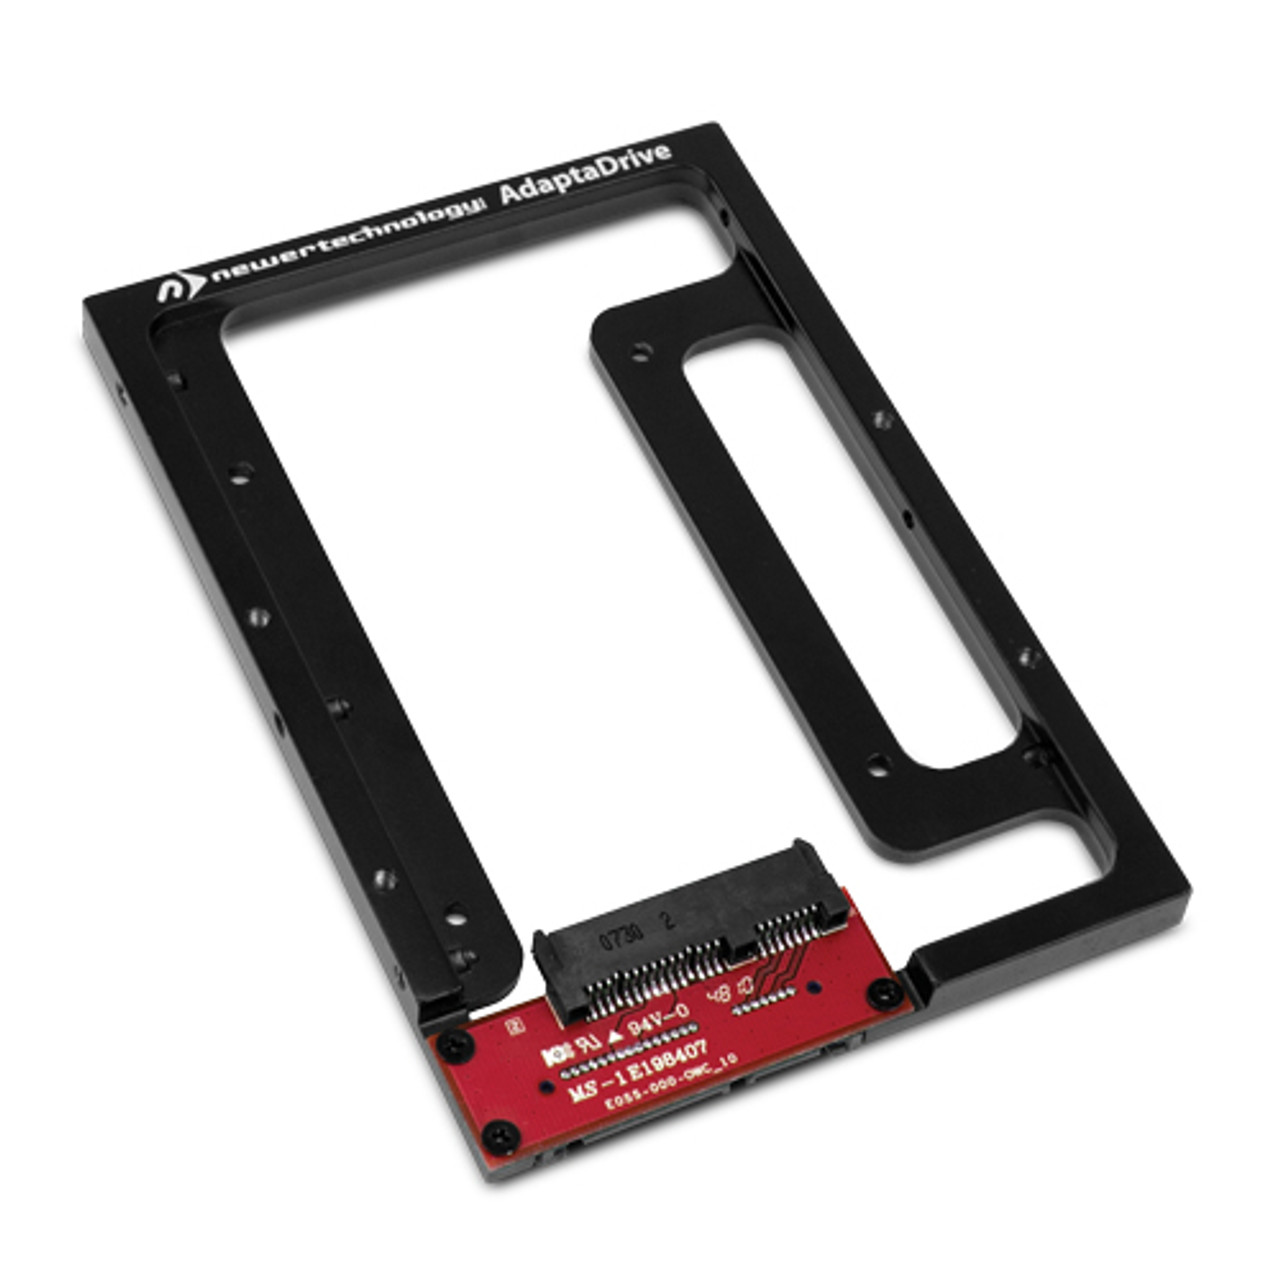 240GB OWC Mercury Extreme 6G SSD and HDD DIY Bundle Kit (for 27-inch iMac 2012 and later)